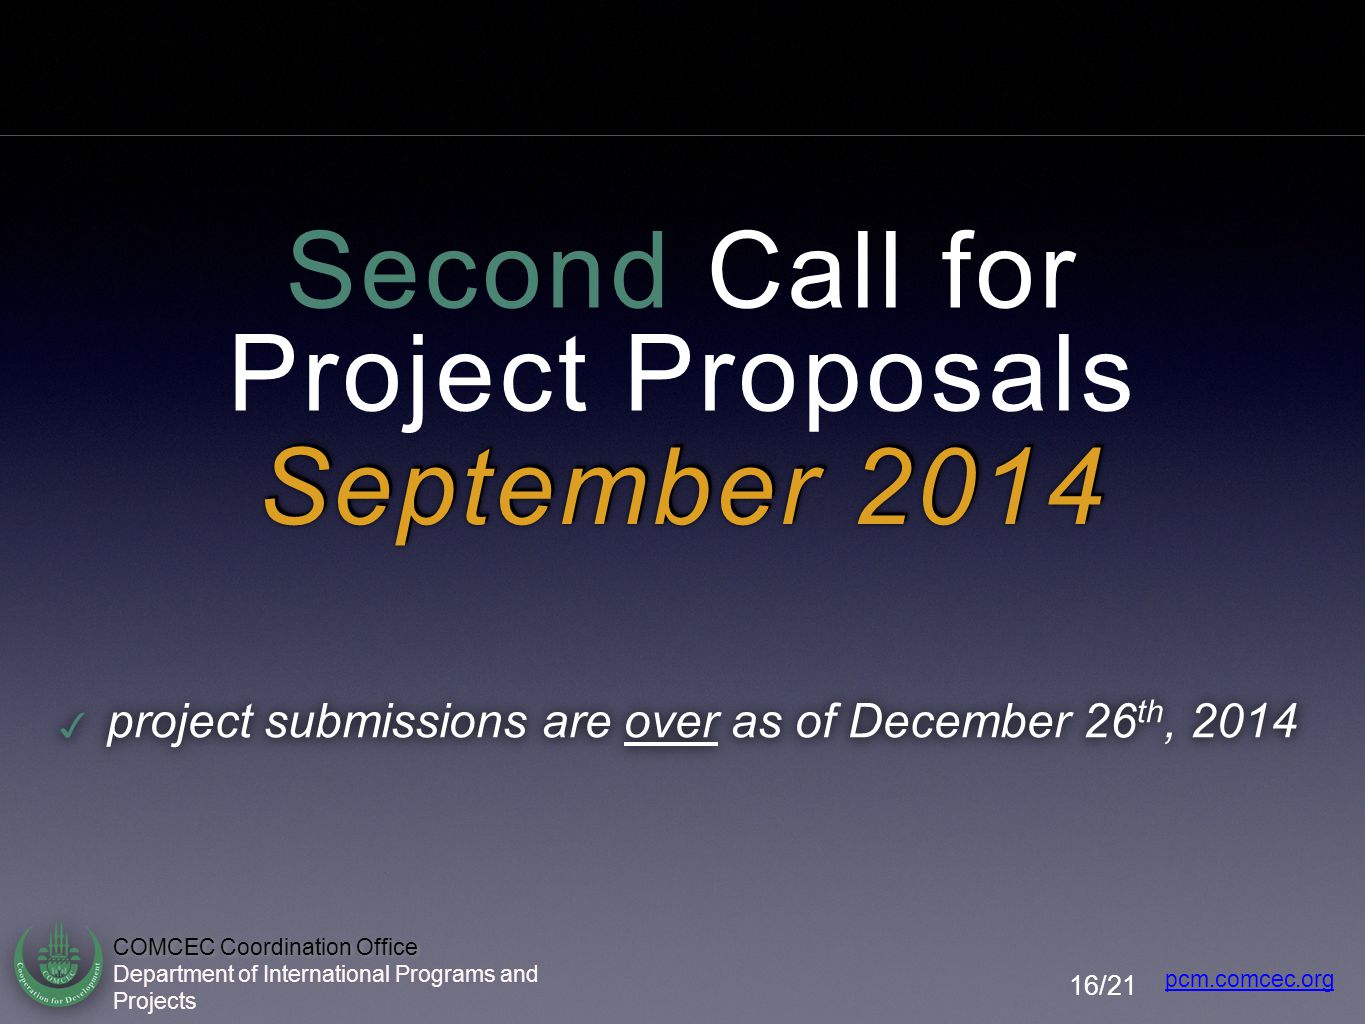 Second Call for Project Proposals